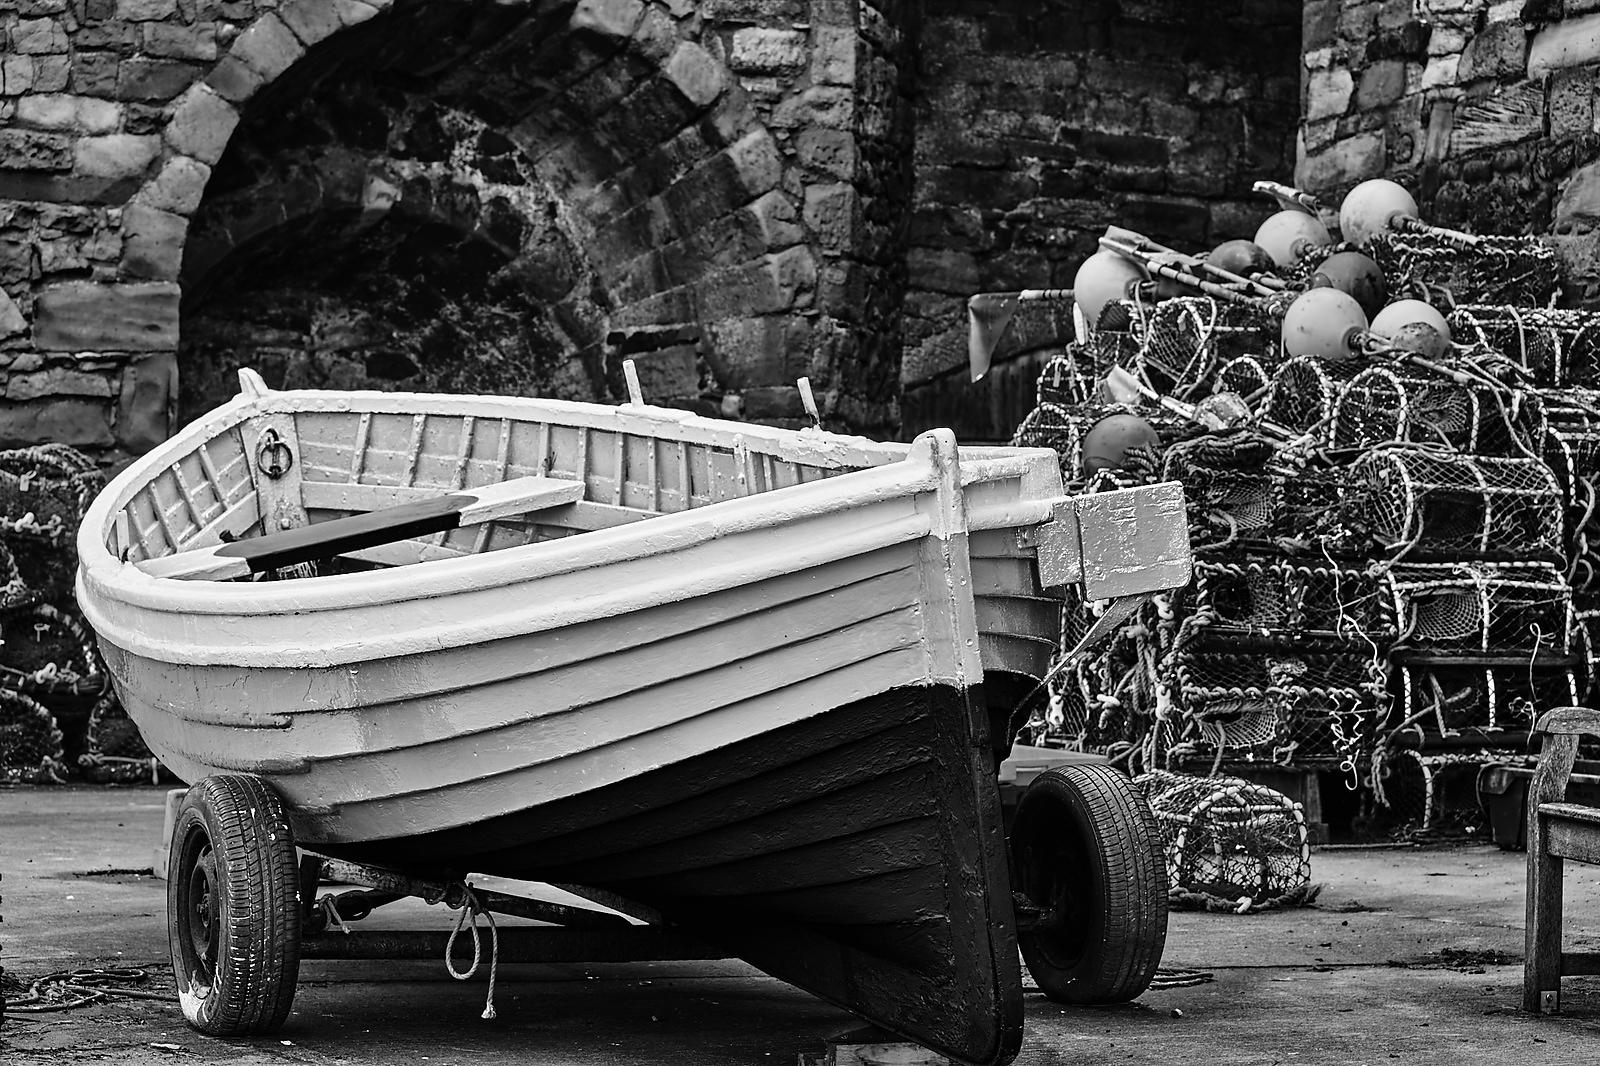 Fishing boat and lobster pots against a stone wall in black and white